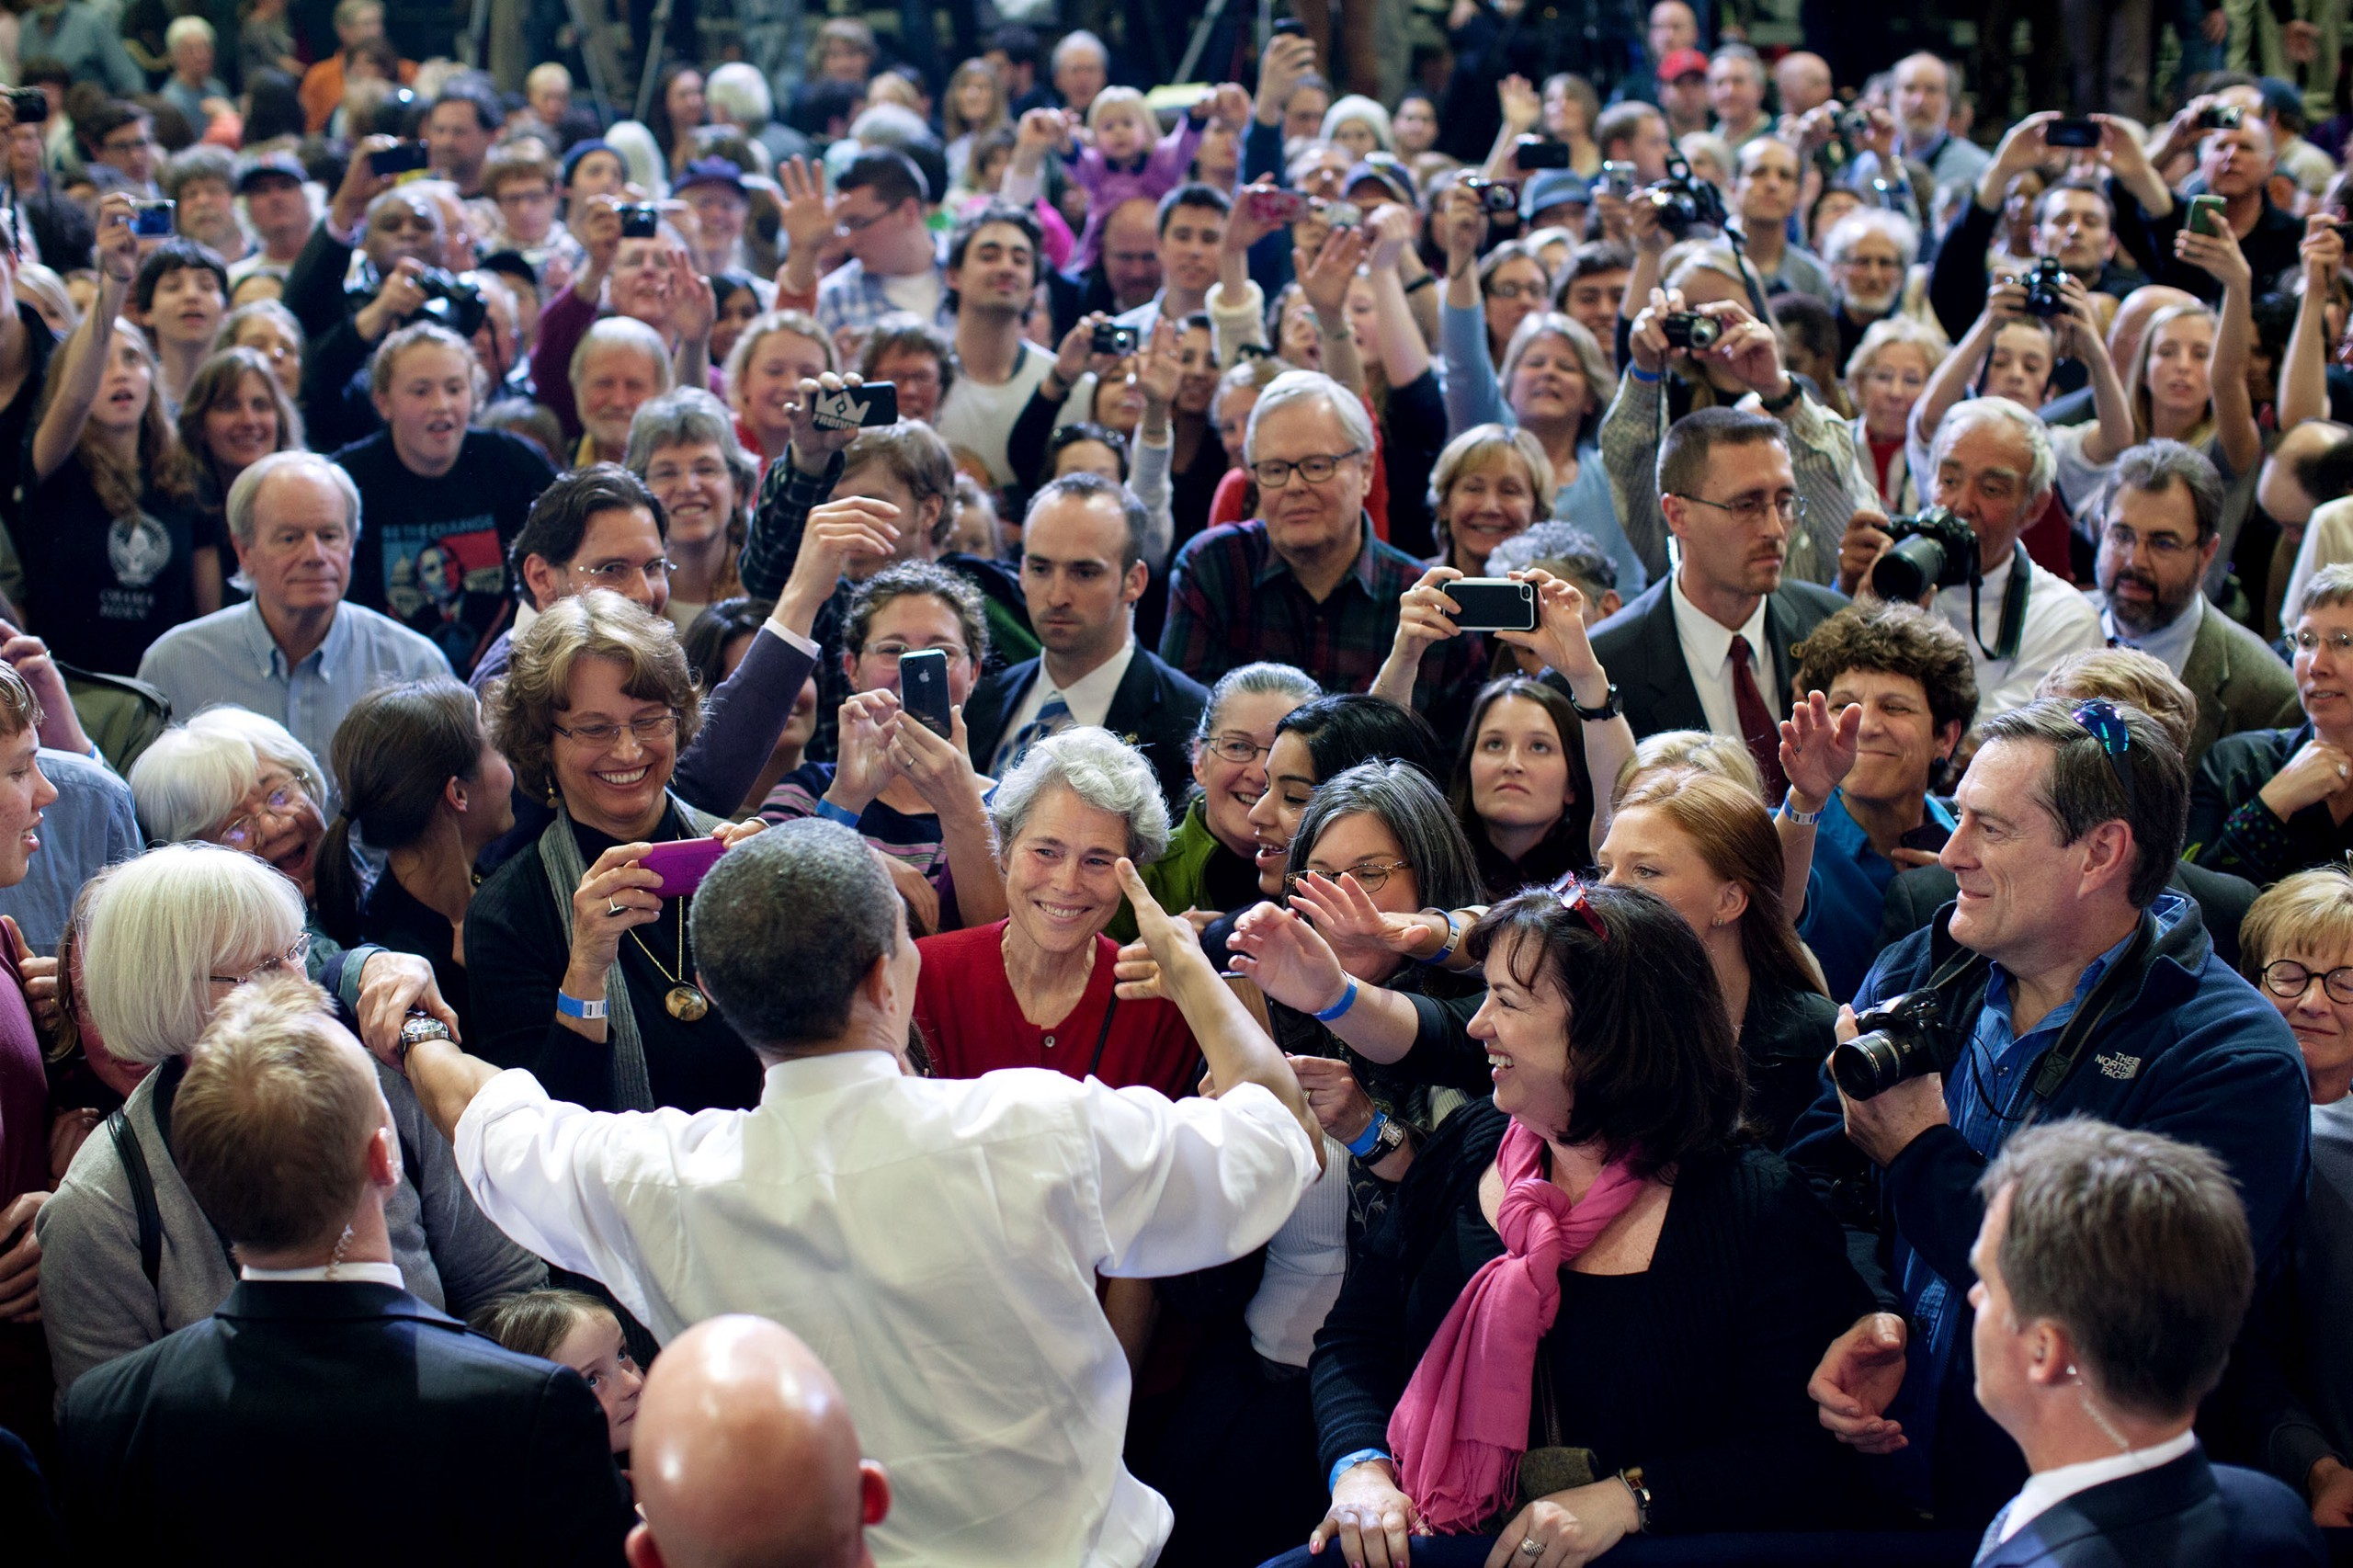 President Obama shaking hands in a crowd